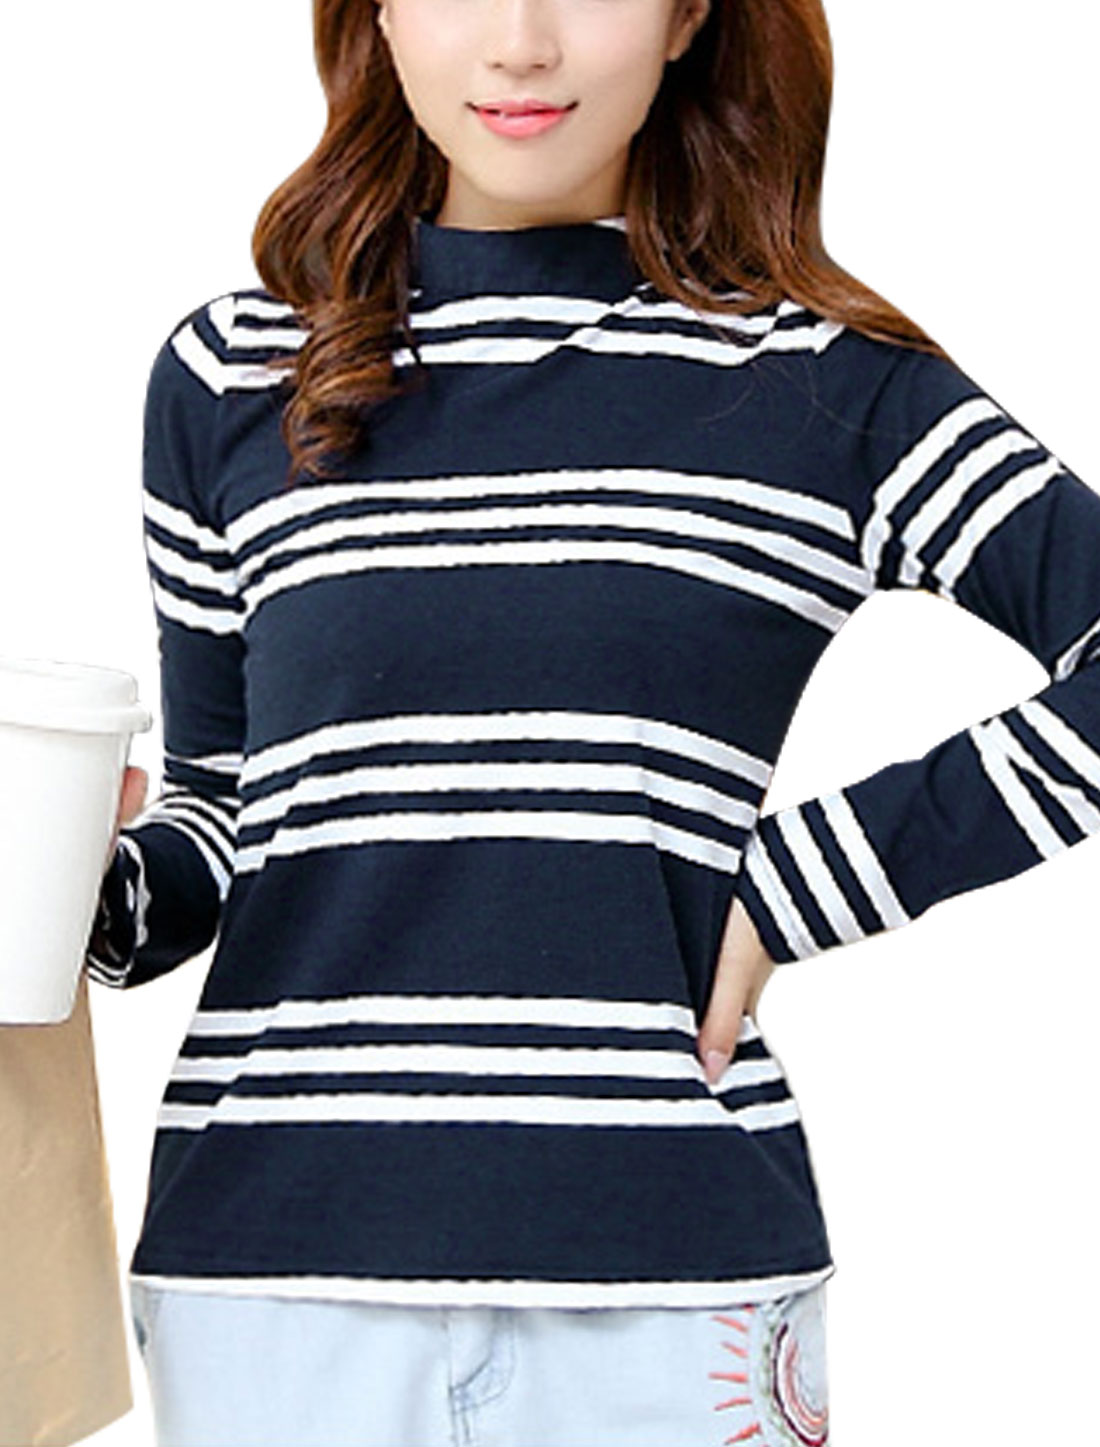 Women Navy Blue Mock Neck Long Sleeves Stripes Casual T-shirt XS